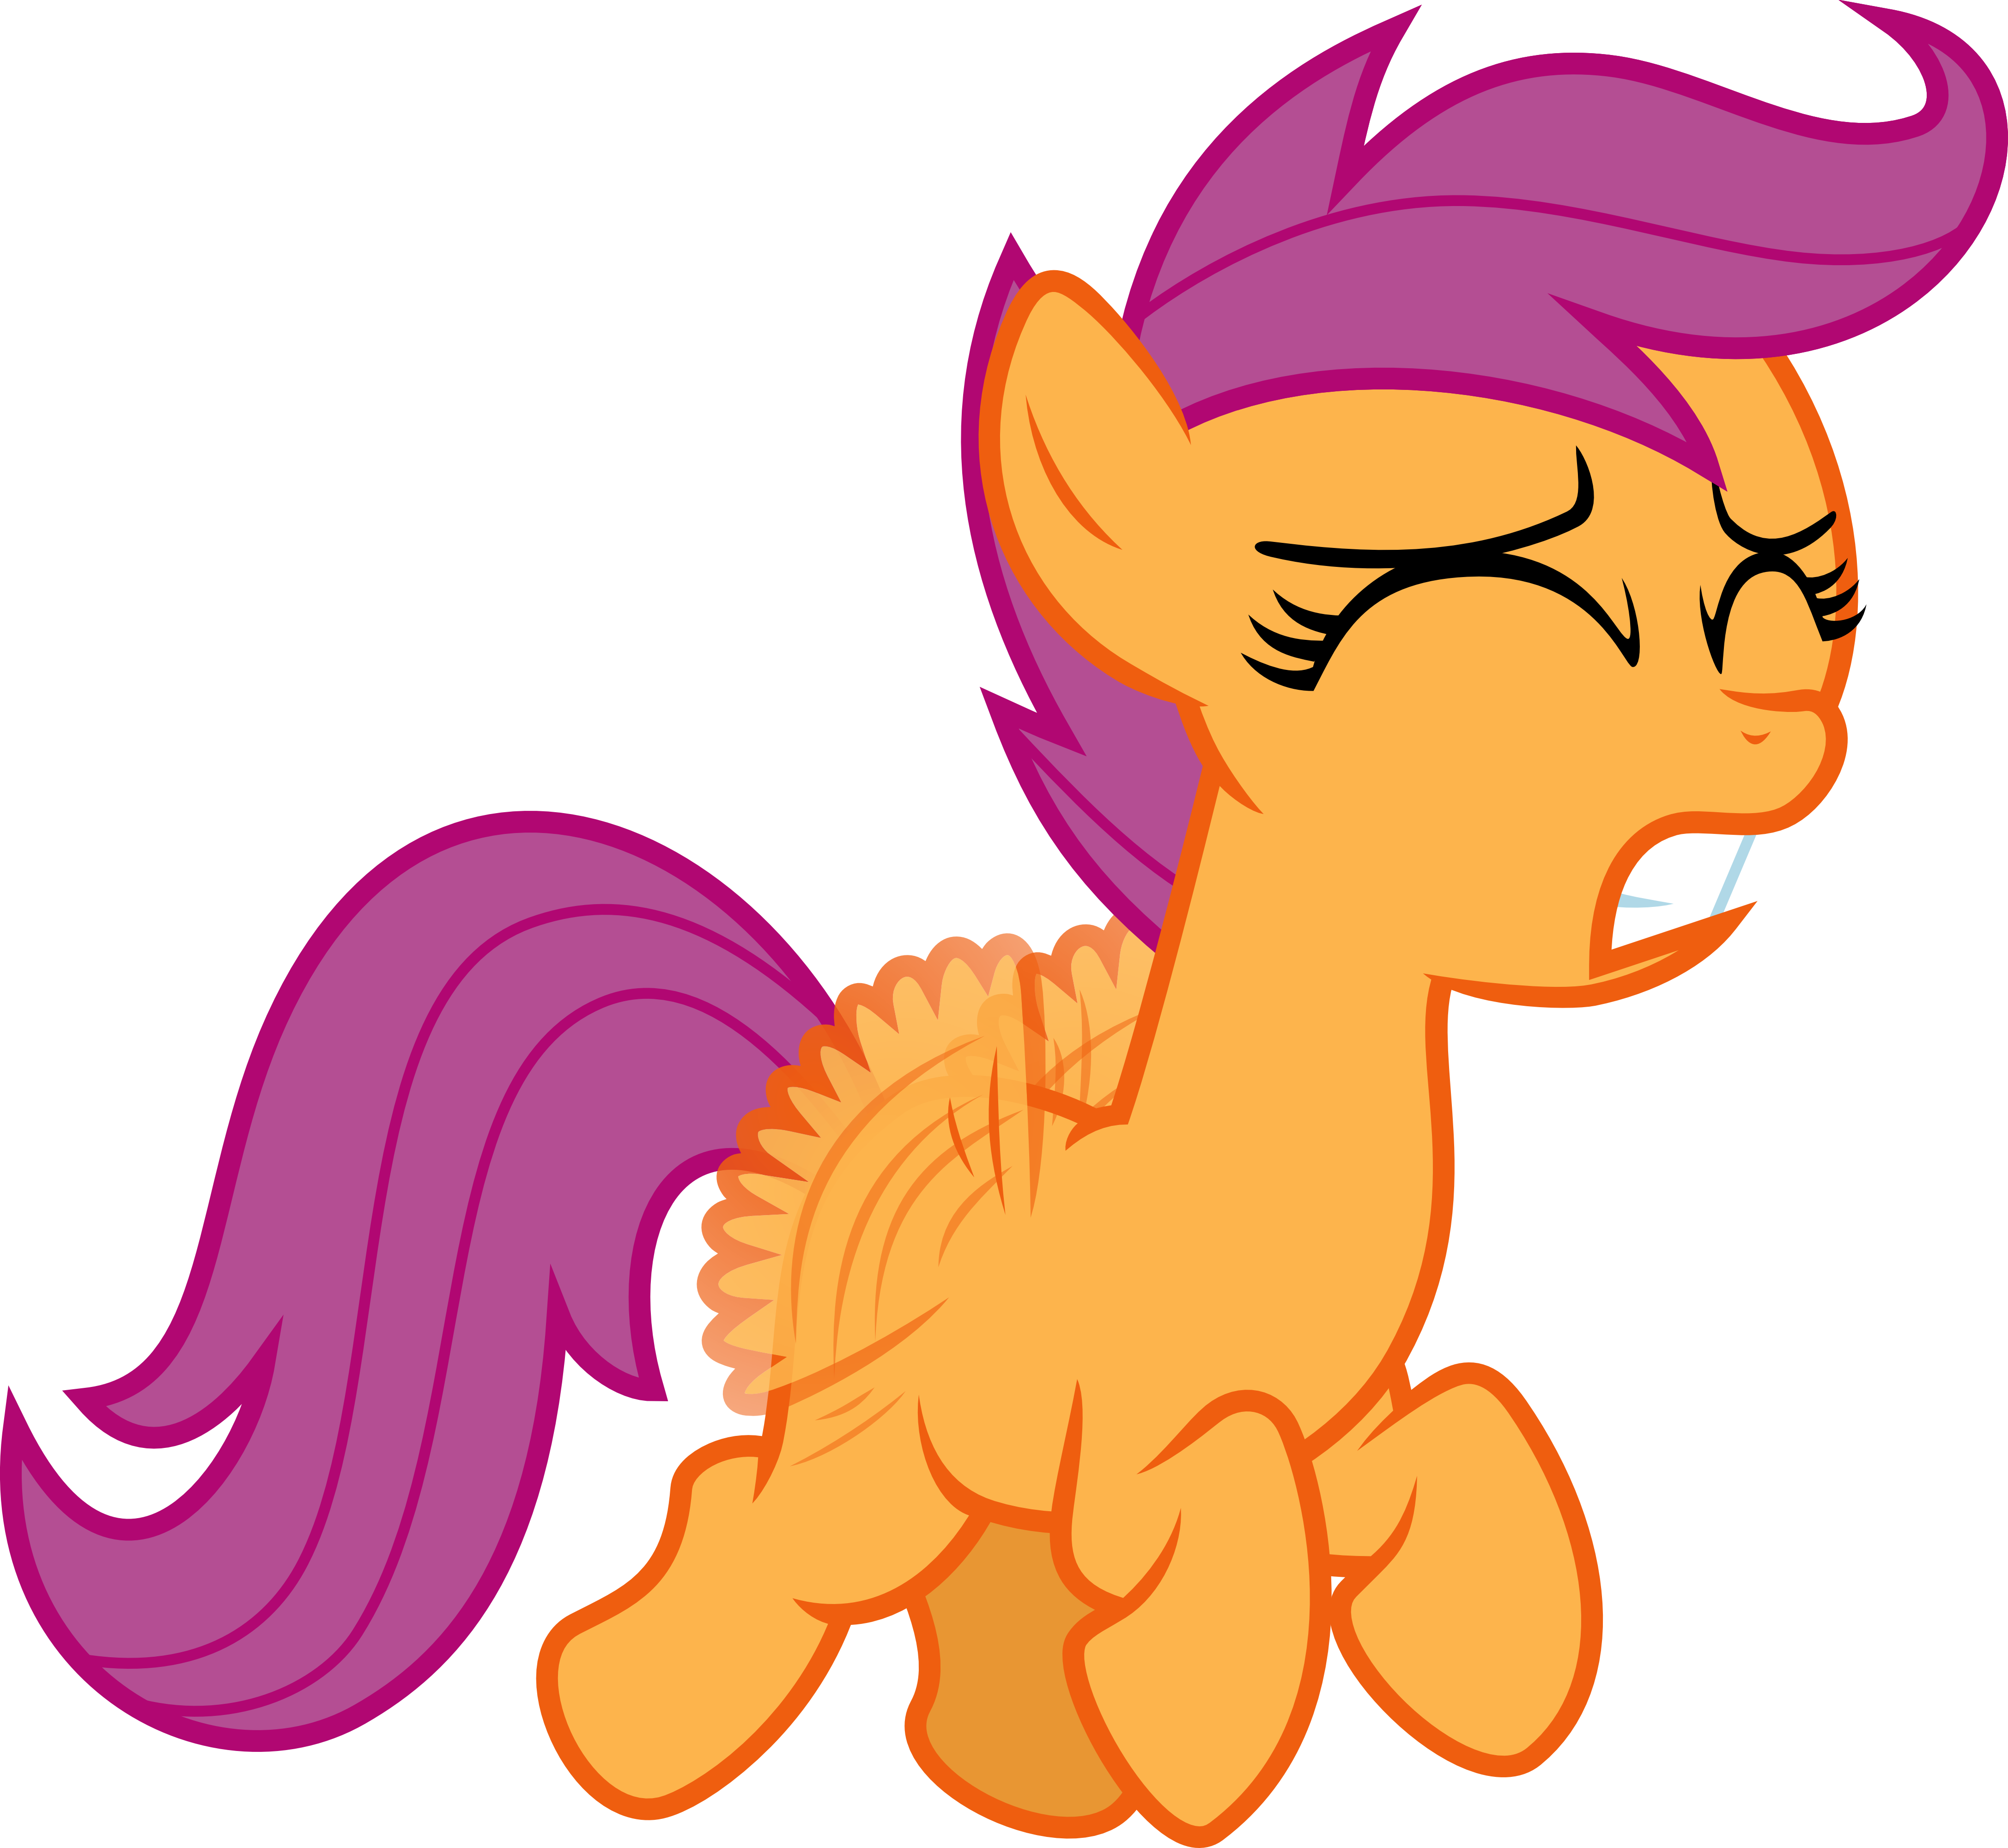 Scootaloo Gonna Fly Now By Jeatz Axl On Deviantart Scootaloo happy prance vector by starshinecelestalis on. deviantart